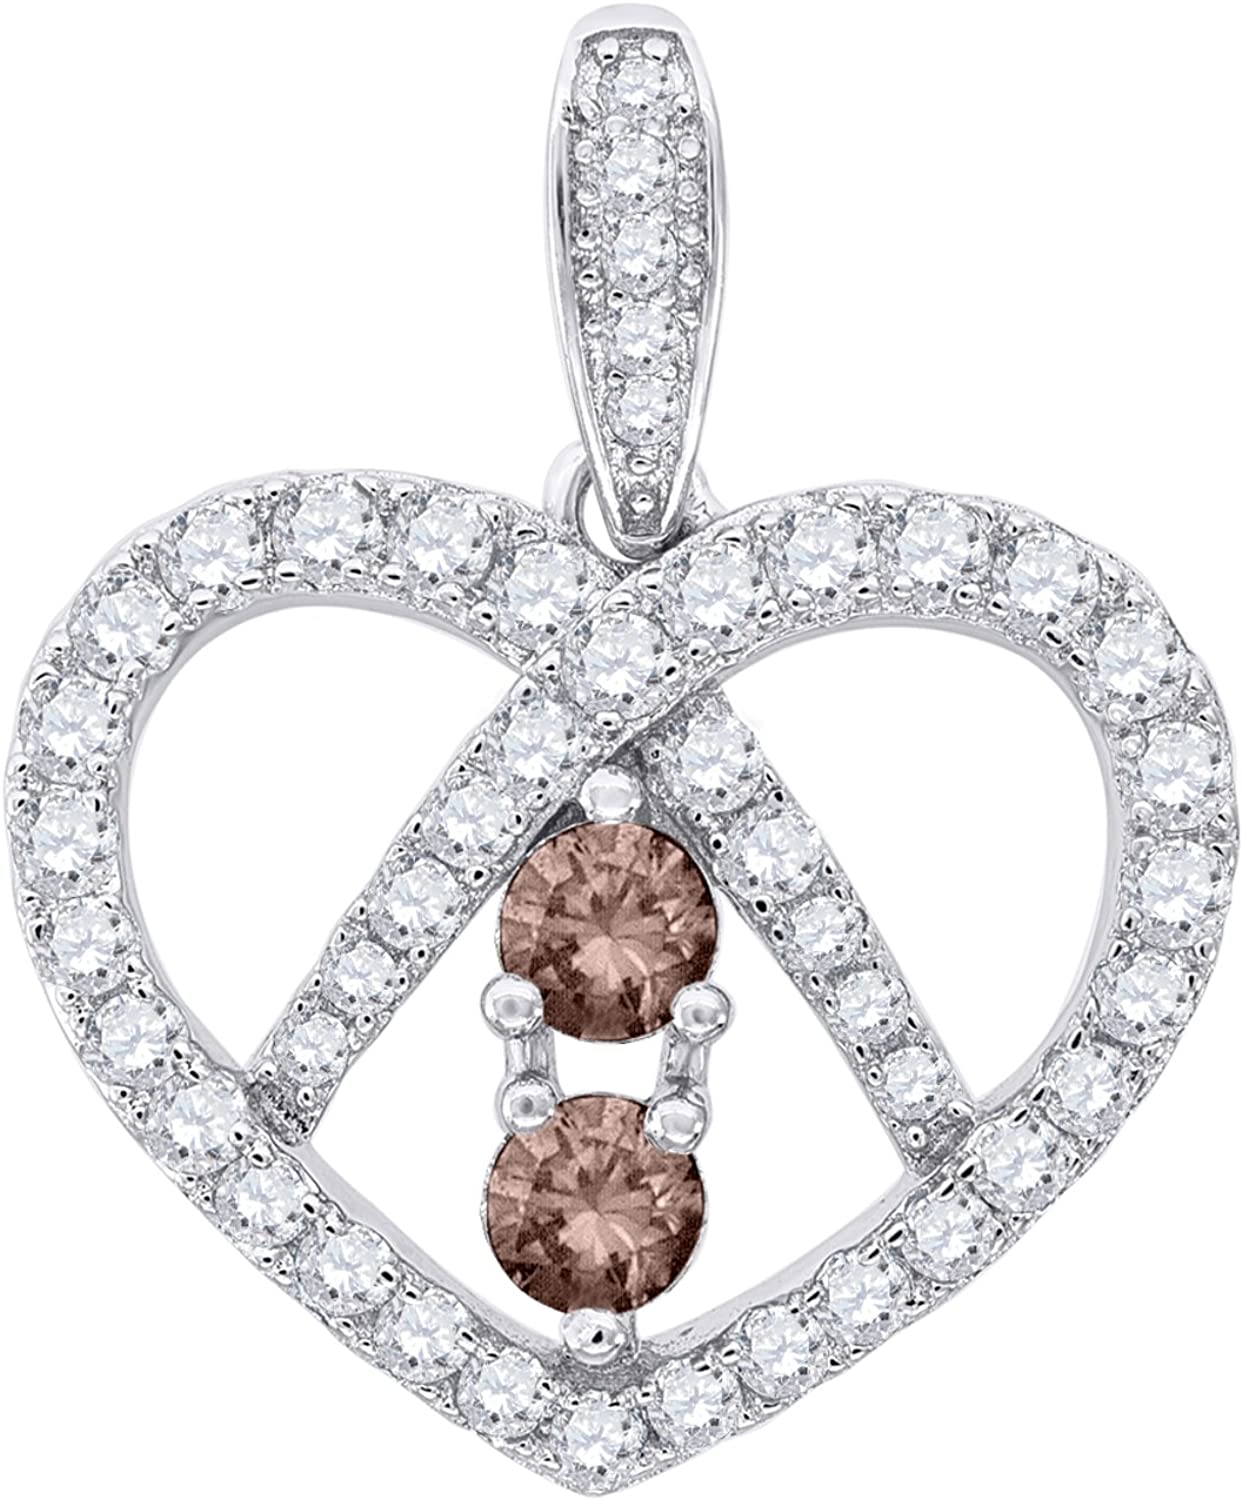 Jewels By Lux 925 Sterling Silver Womens Round CZ 2 Two Brown Stone Heart Fashion Charm Pendant